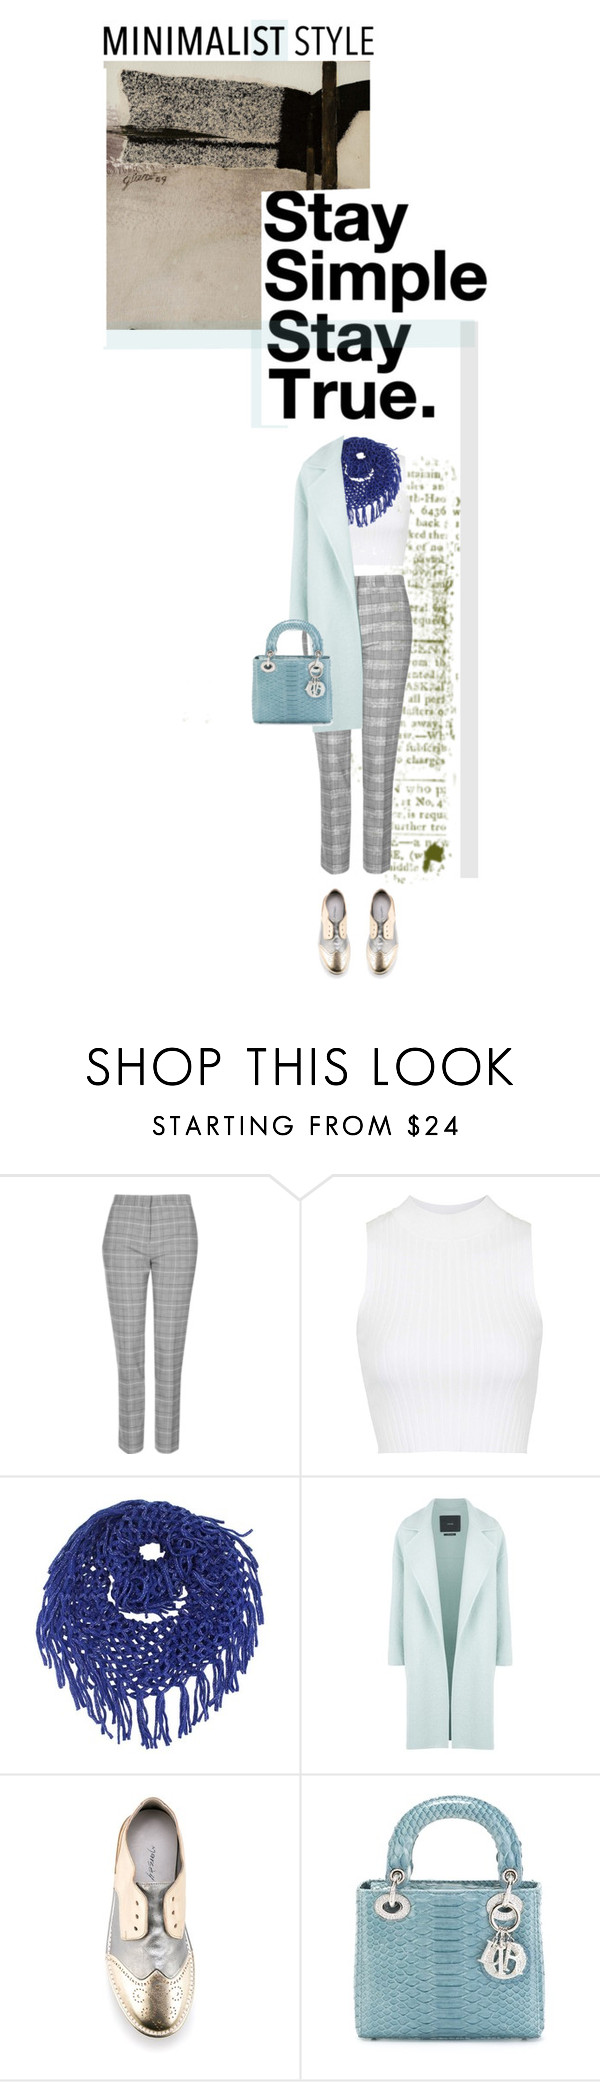 """""""Stay simple, stay true"""" by no-where-girl ❤ liked on Polyvore featuring Topshop, MaxMara, Marsèll, Christian Dior and Minimaliststyle"""